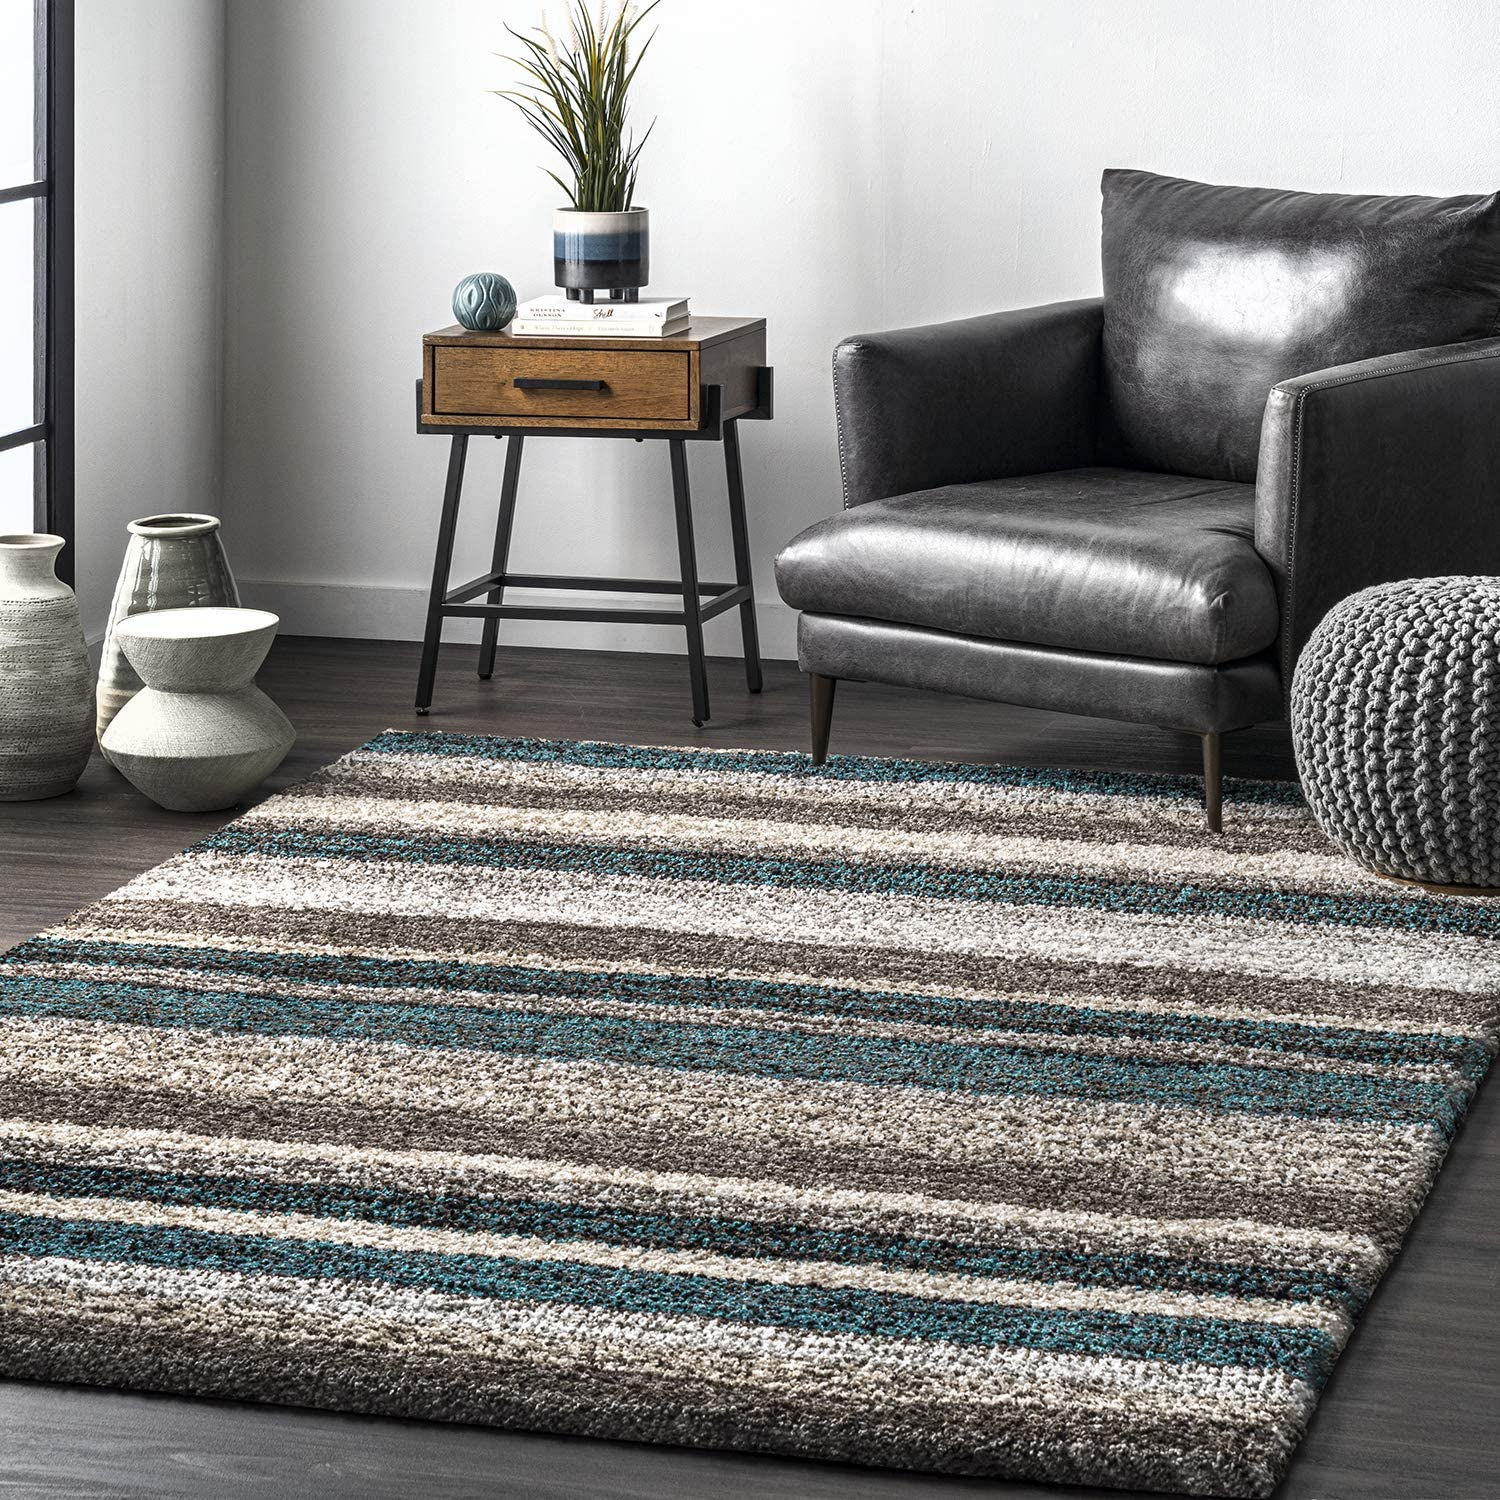 nuLOOM Classie Hand Tufted 100% quality warranty Dealing full price reduction Shag Area Rug Blue Multi Square 6'